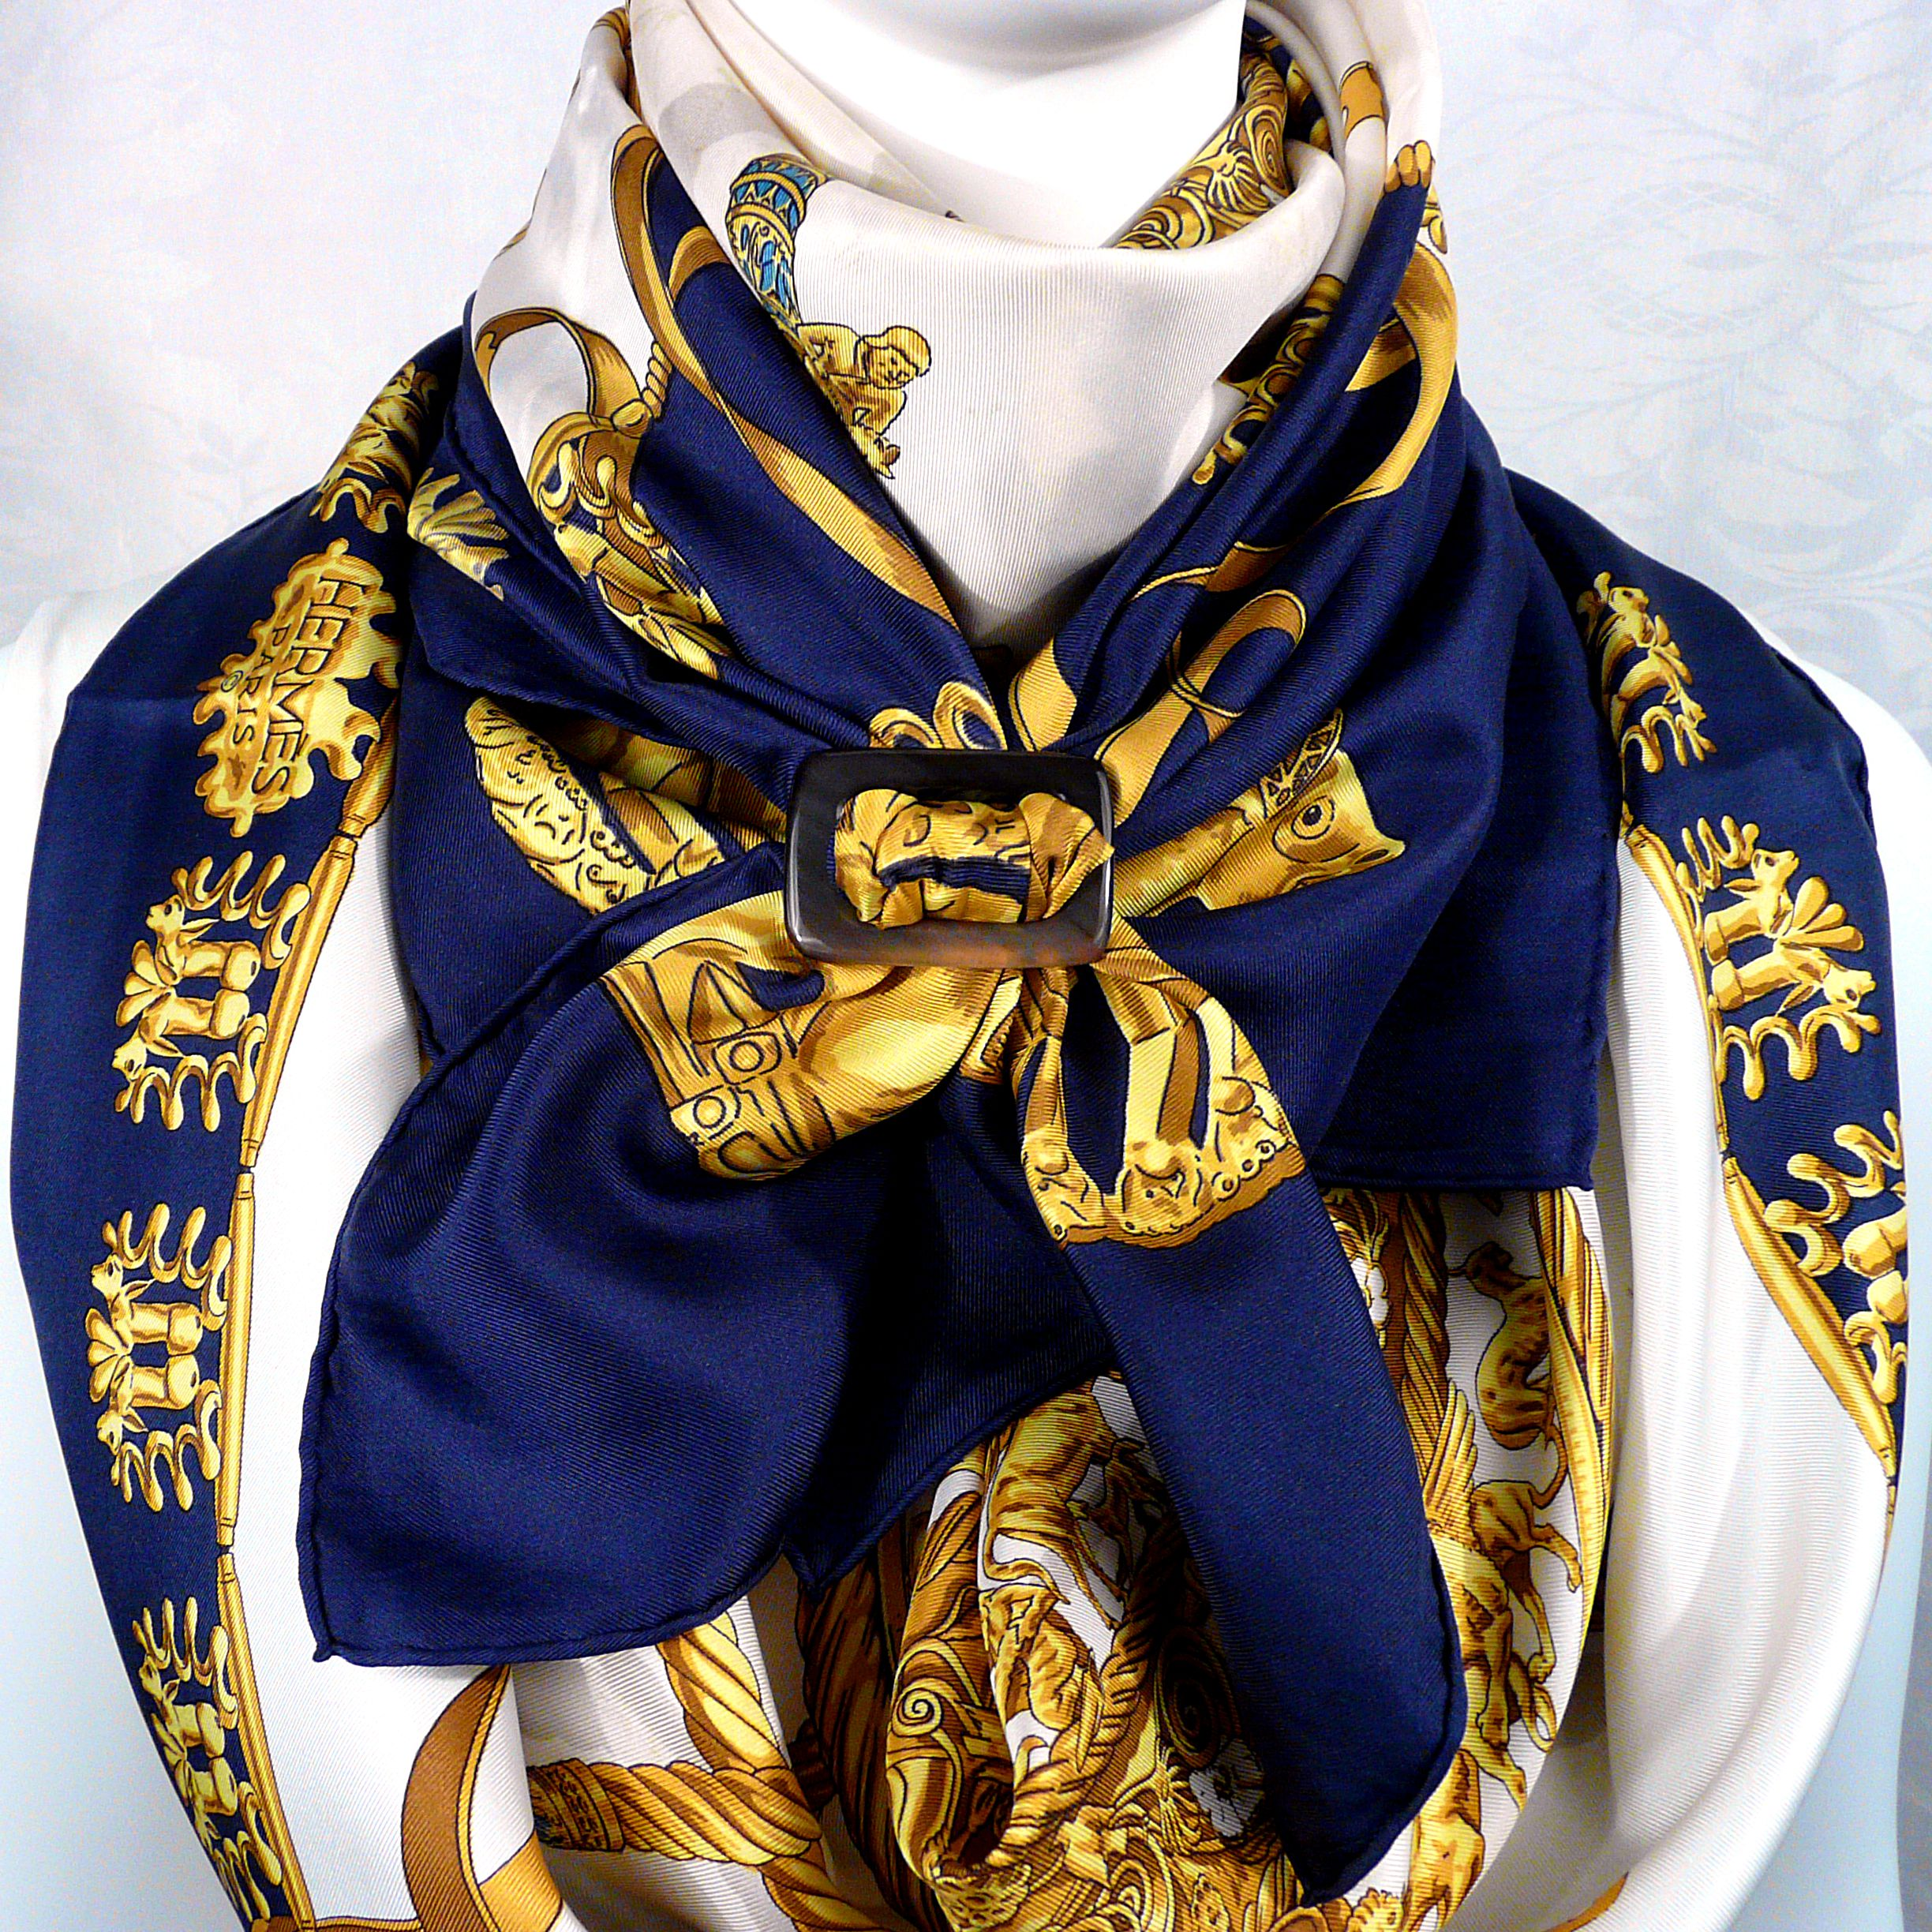 2 Cavaliers d'Or HERMES Scarves with Anneau Ceinture Horn Scarf Ring Carre de Paris II